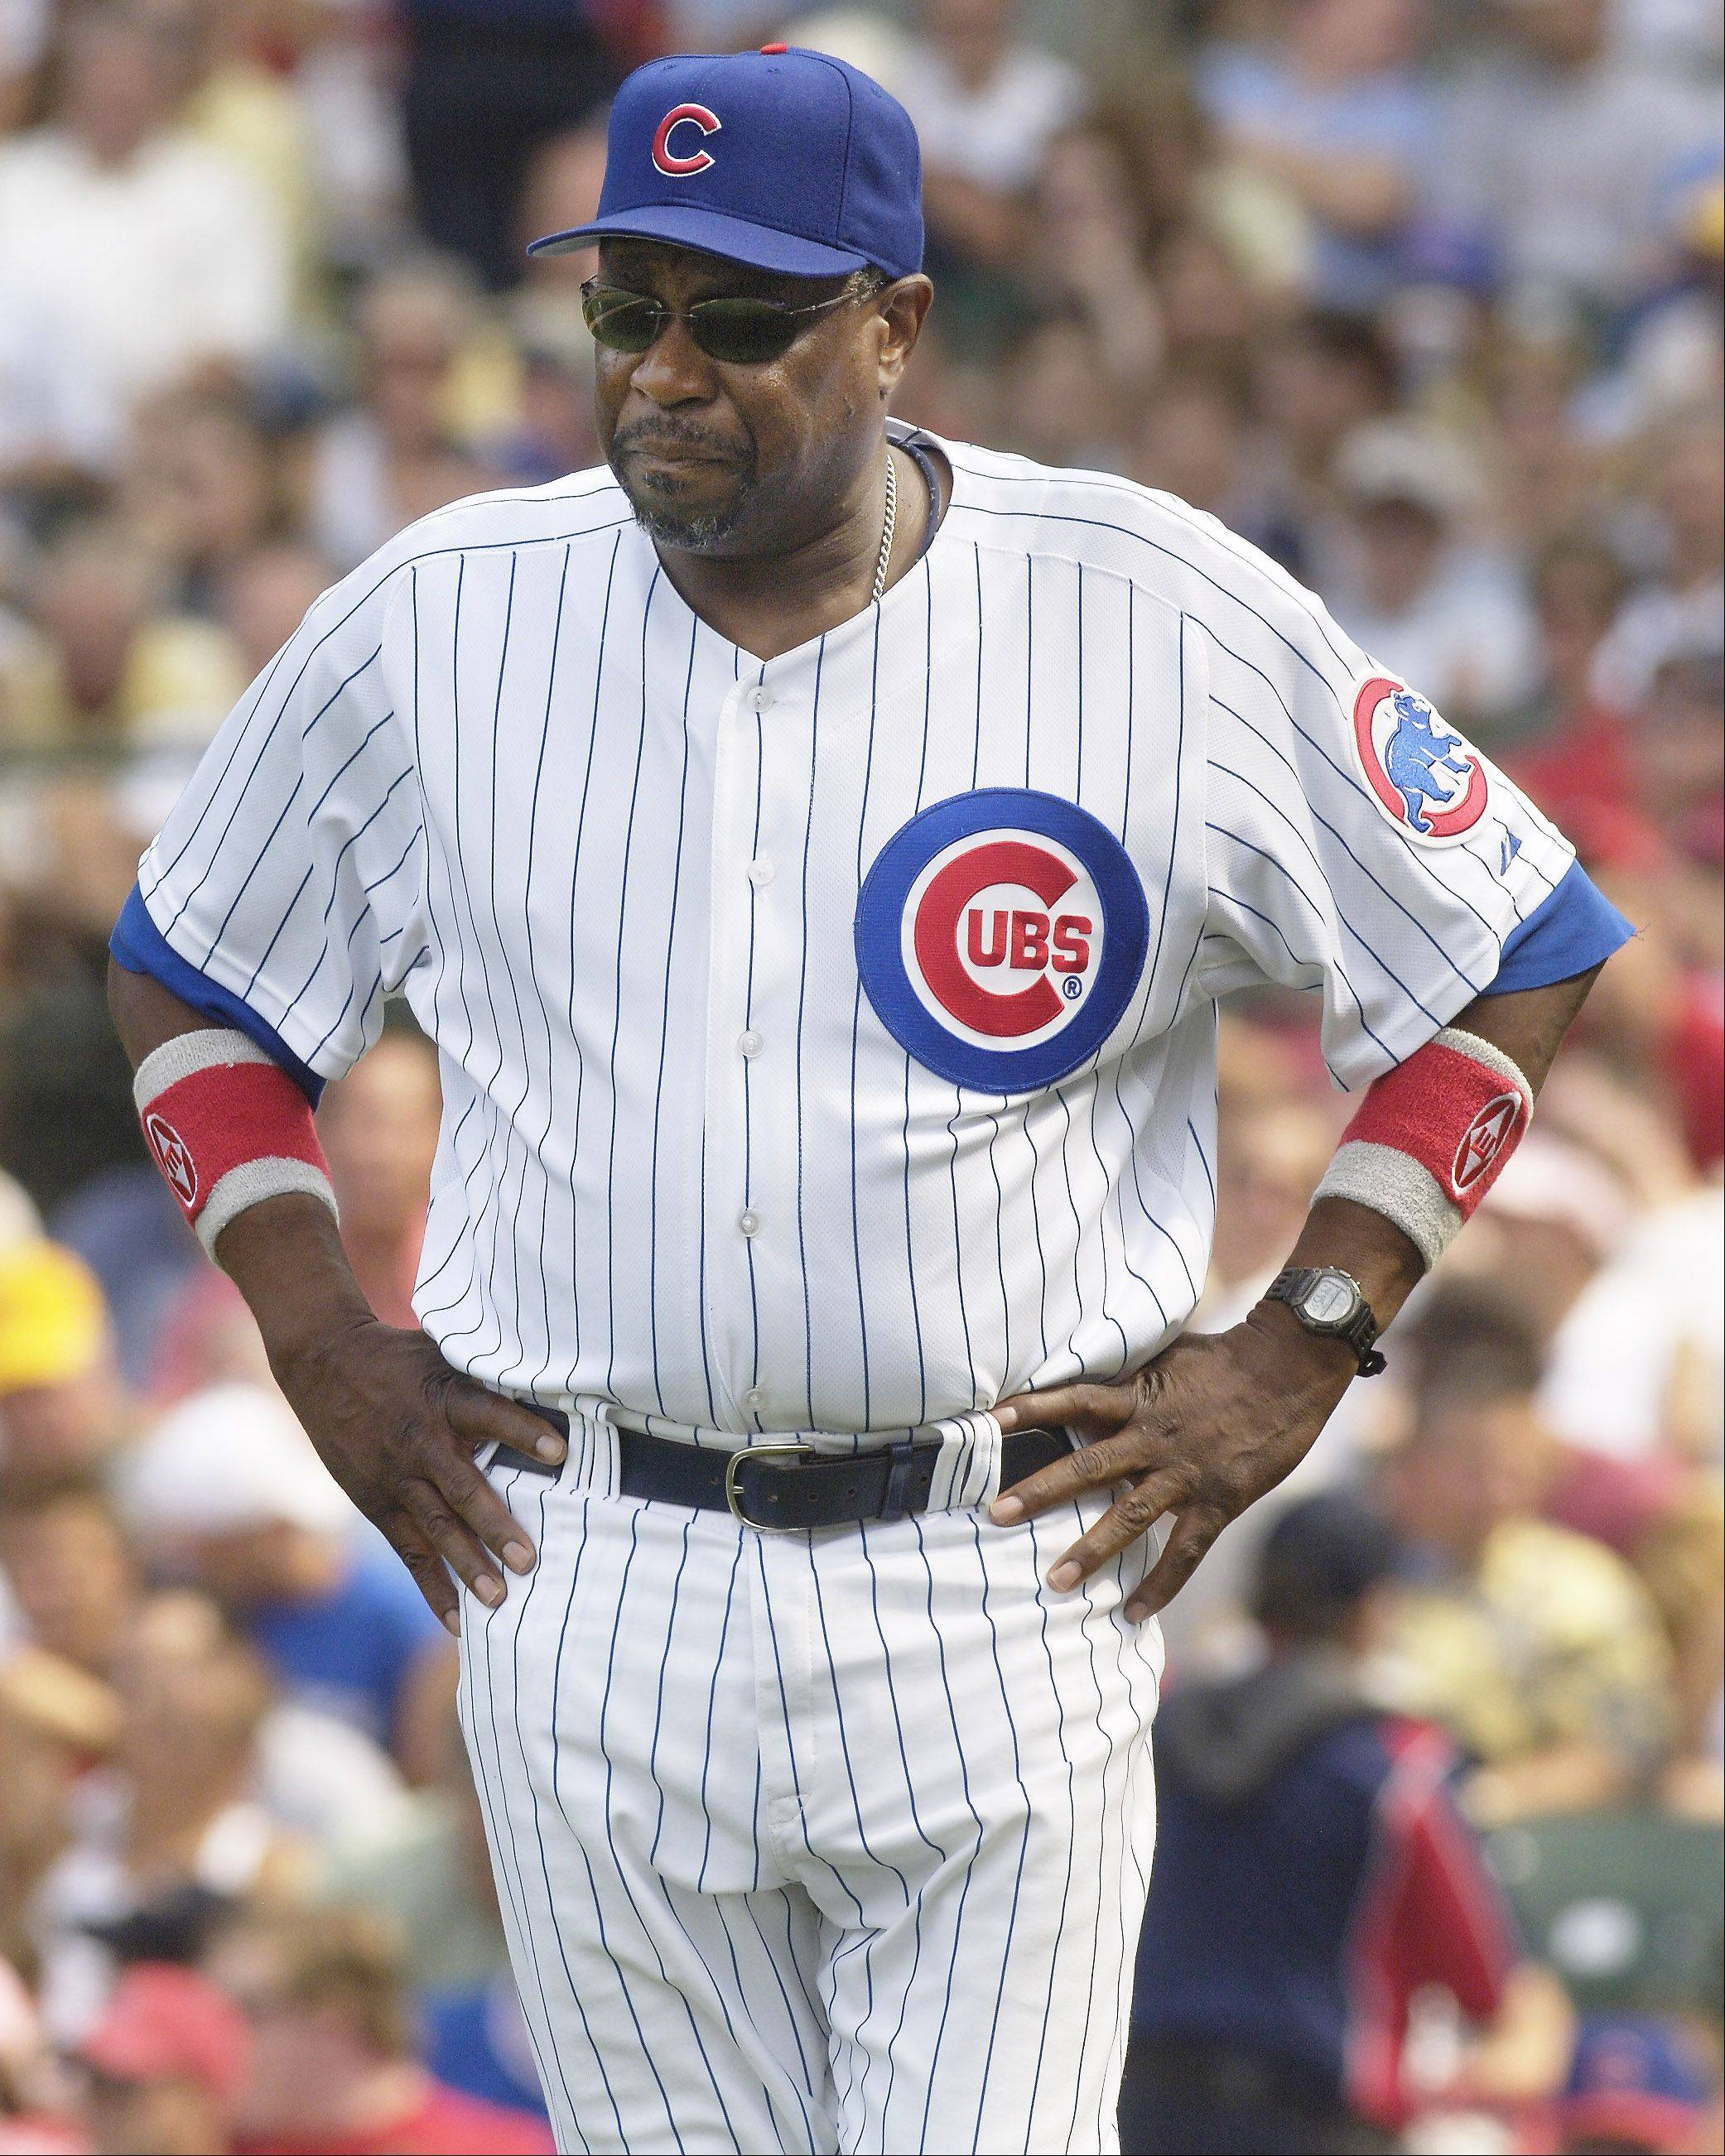 Cubs manager Dusty Baker was fired the day after the 2006 season ended.